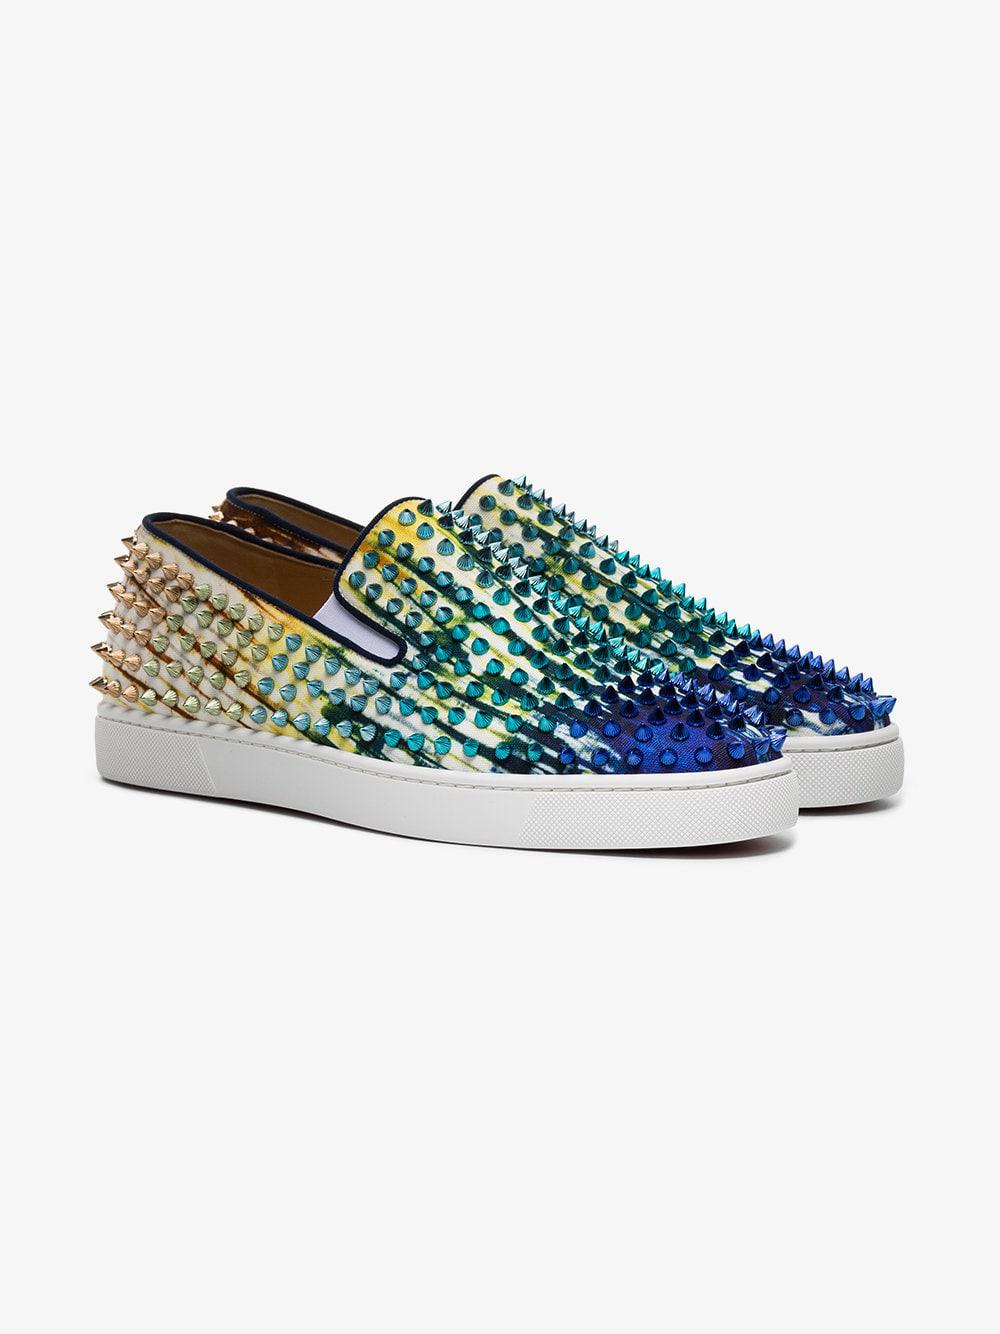 7bbbf0e1da30 christian-louboutin-multicolour-Blue-Roller-Boat-Spike-Low-Top-Sneakers.jpeg